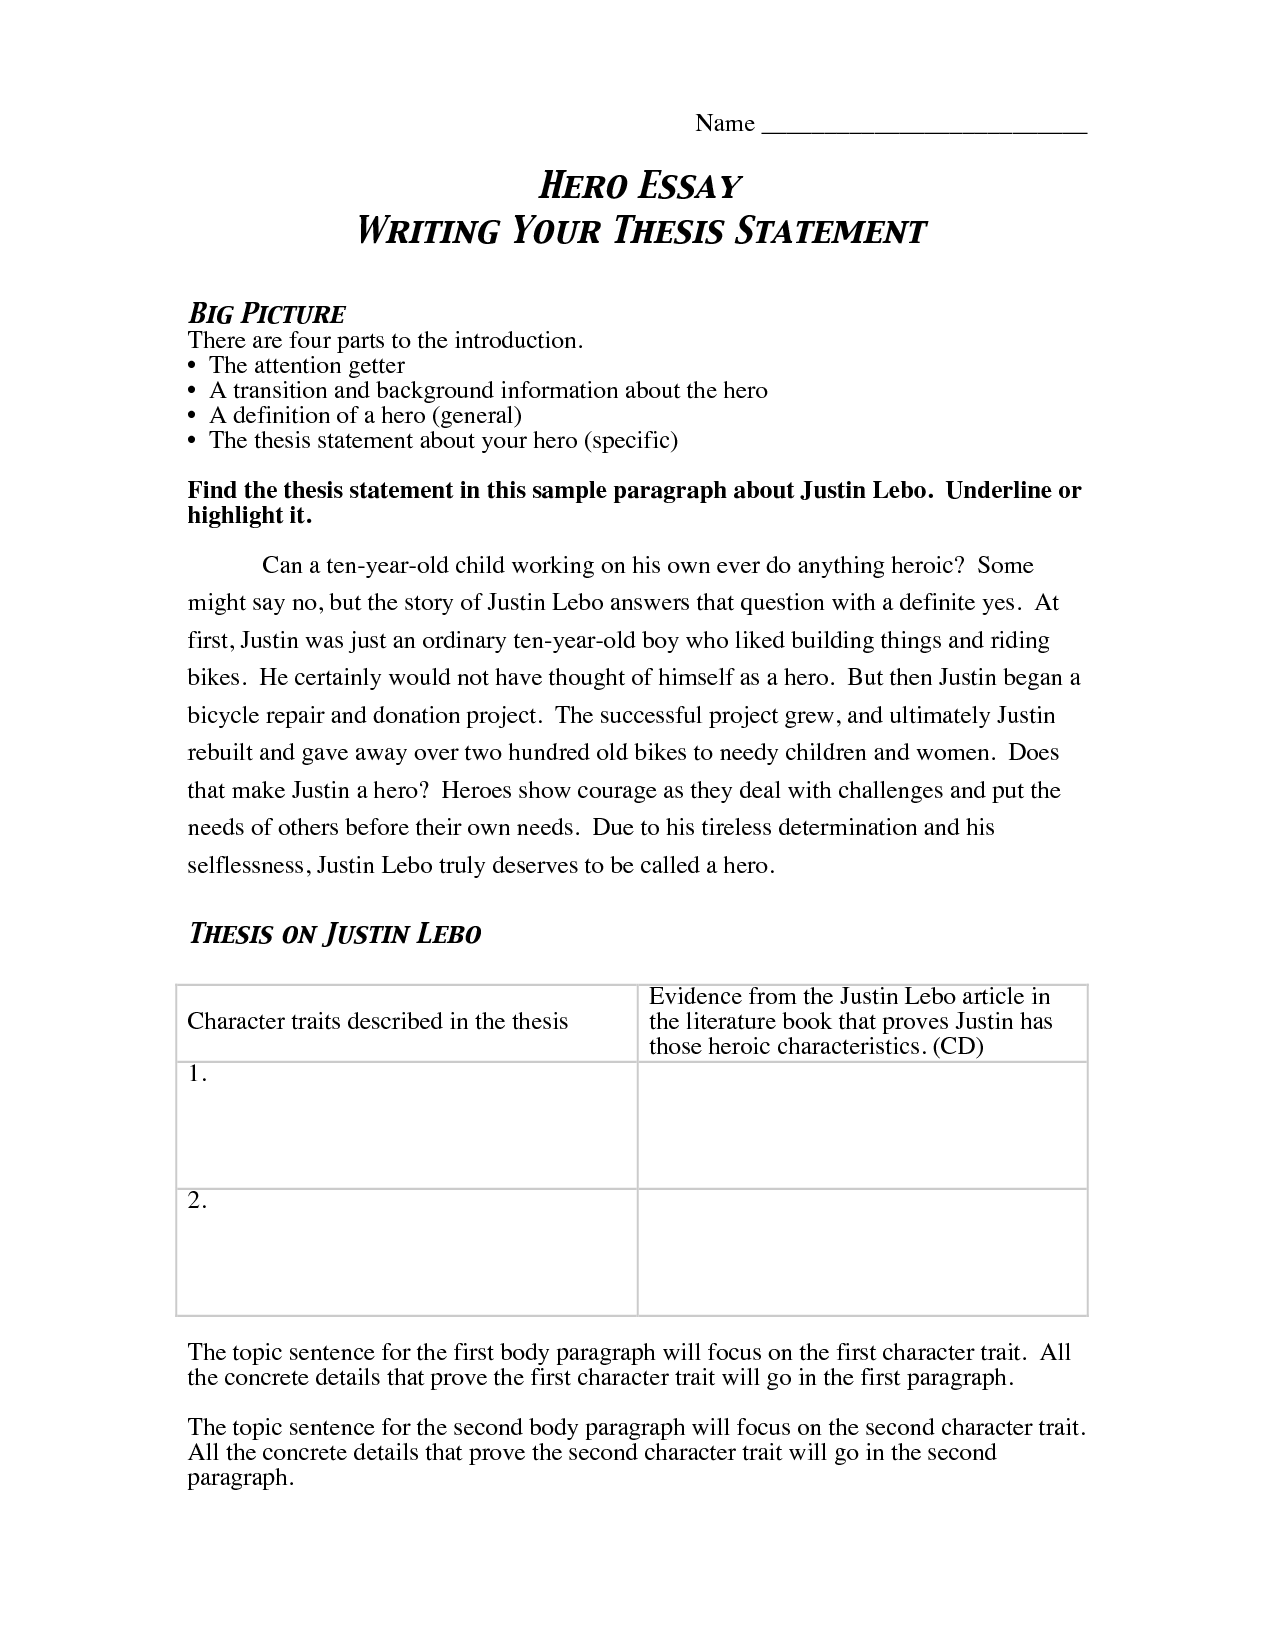 essay writing thesis statement  professional writing service